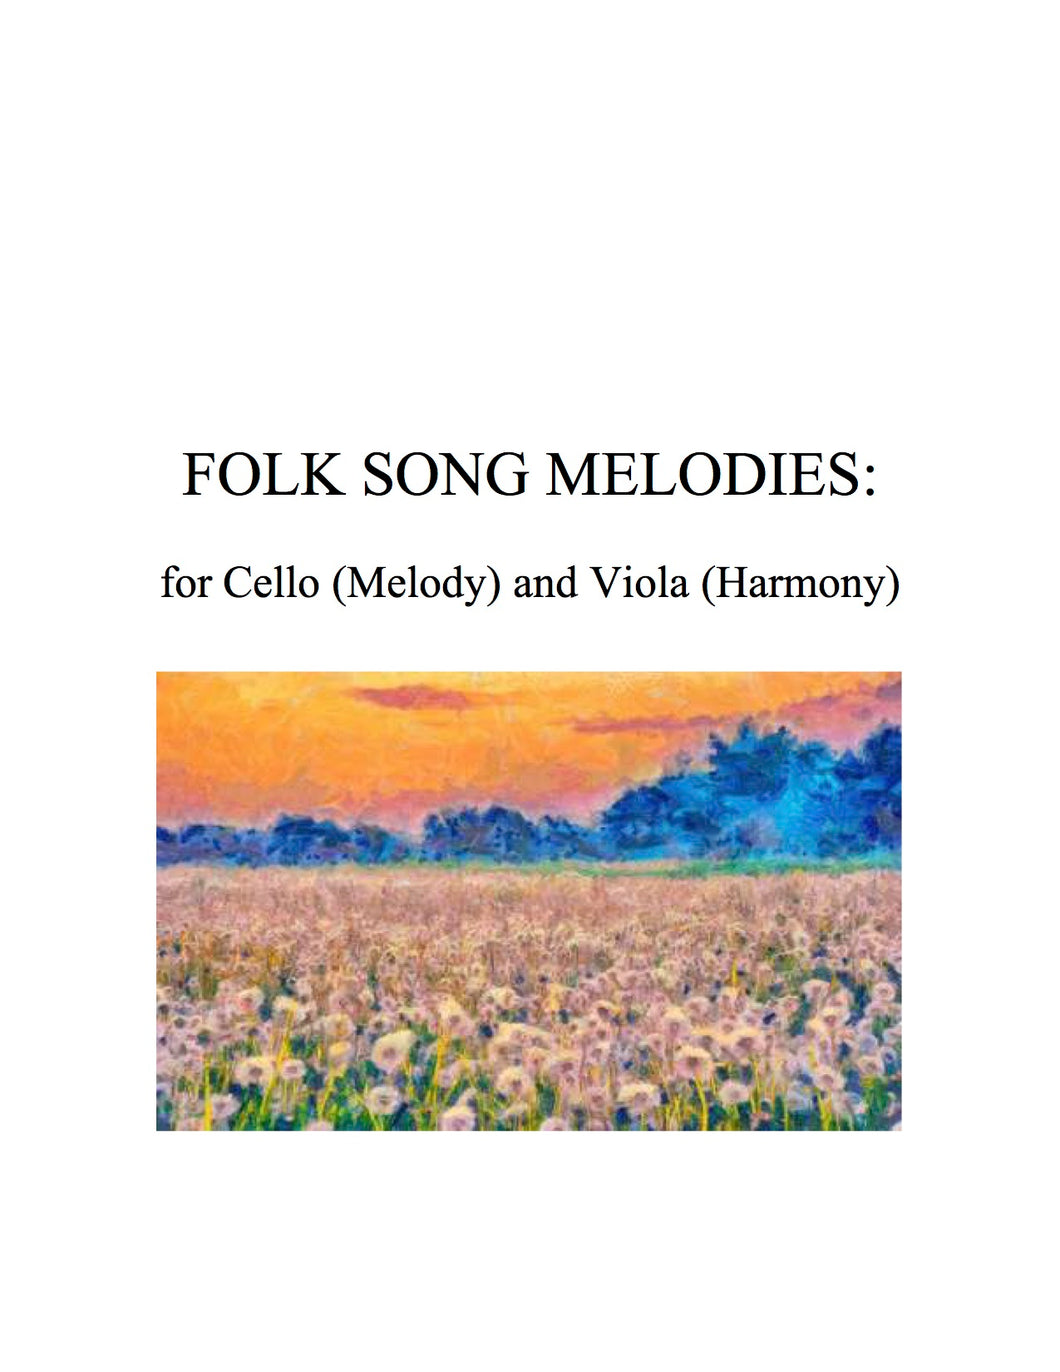 024 - PDF BUNDLE - Folk Song Melodies for Cello (Melody) and Viola (Harmony) Twinkle - Etude